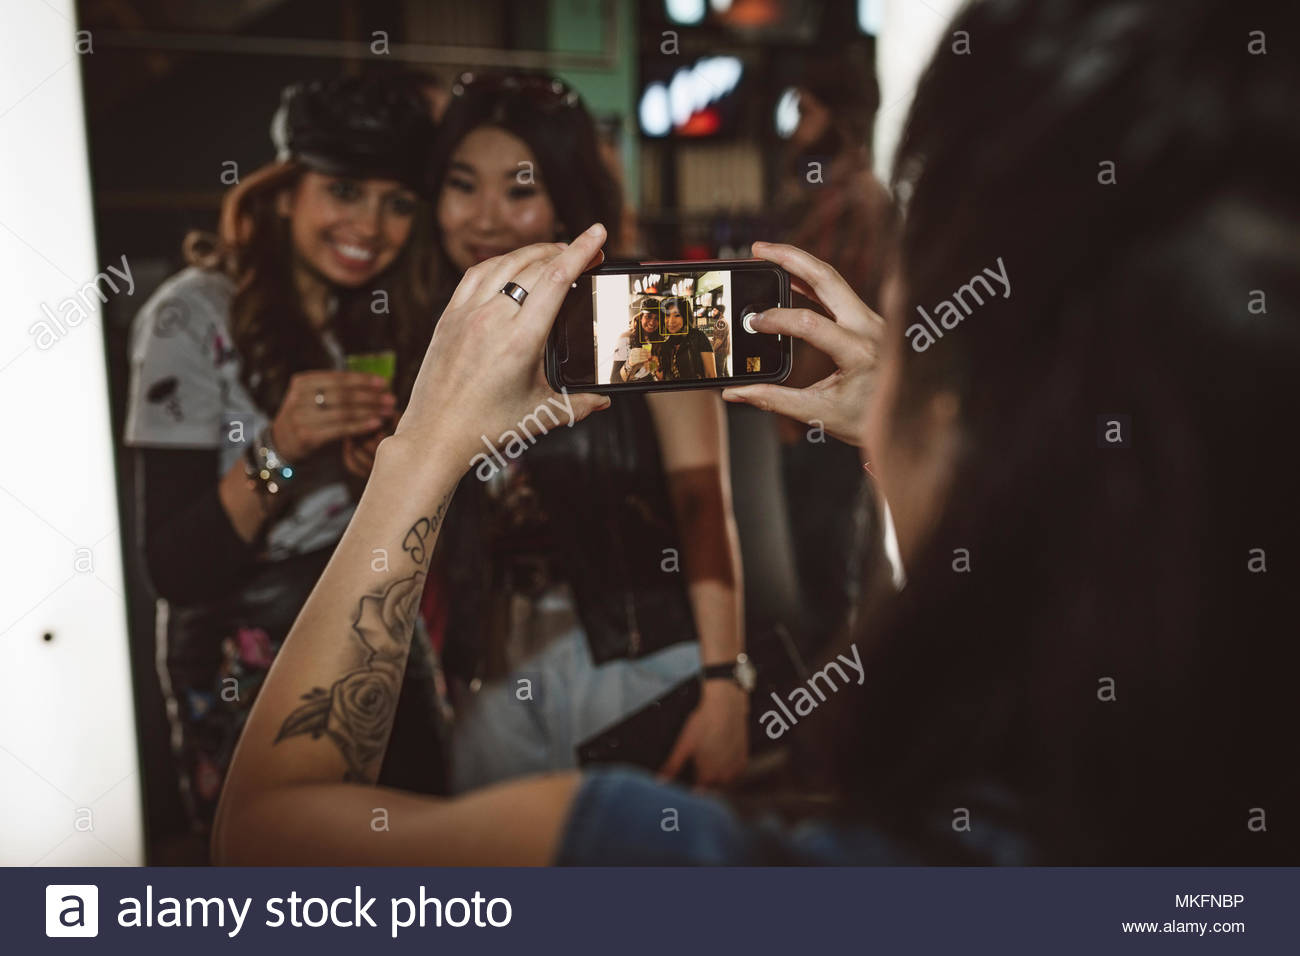 Young female millennial with camera phone photographing friends in nightclub - Stock Image